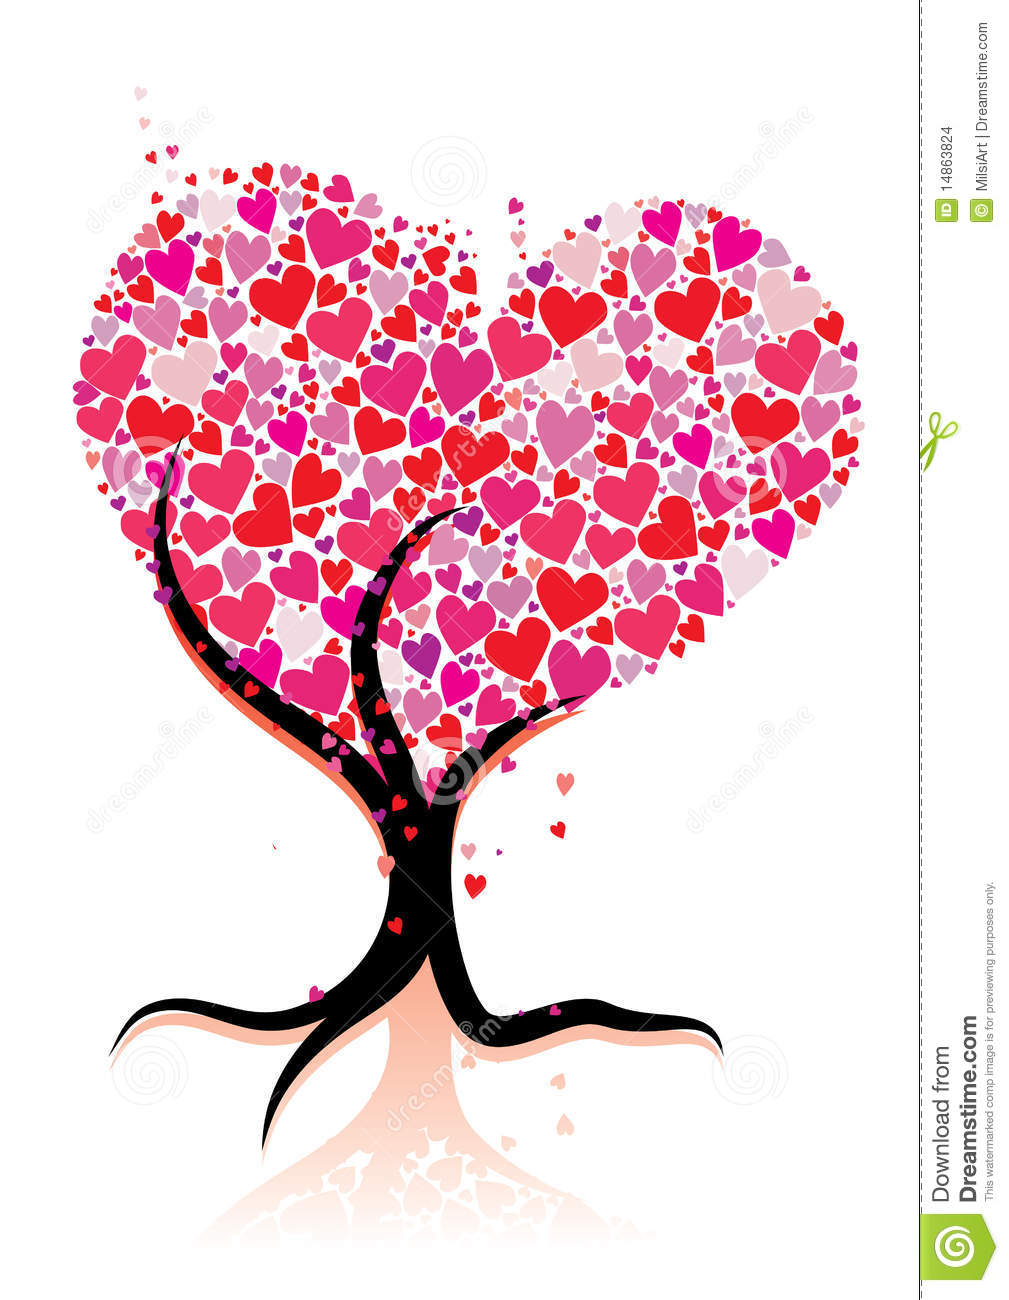 Stock Images Love Tree Image14863824 on Stock Illustration Fish Silhouette